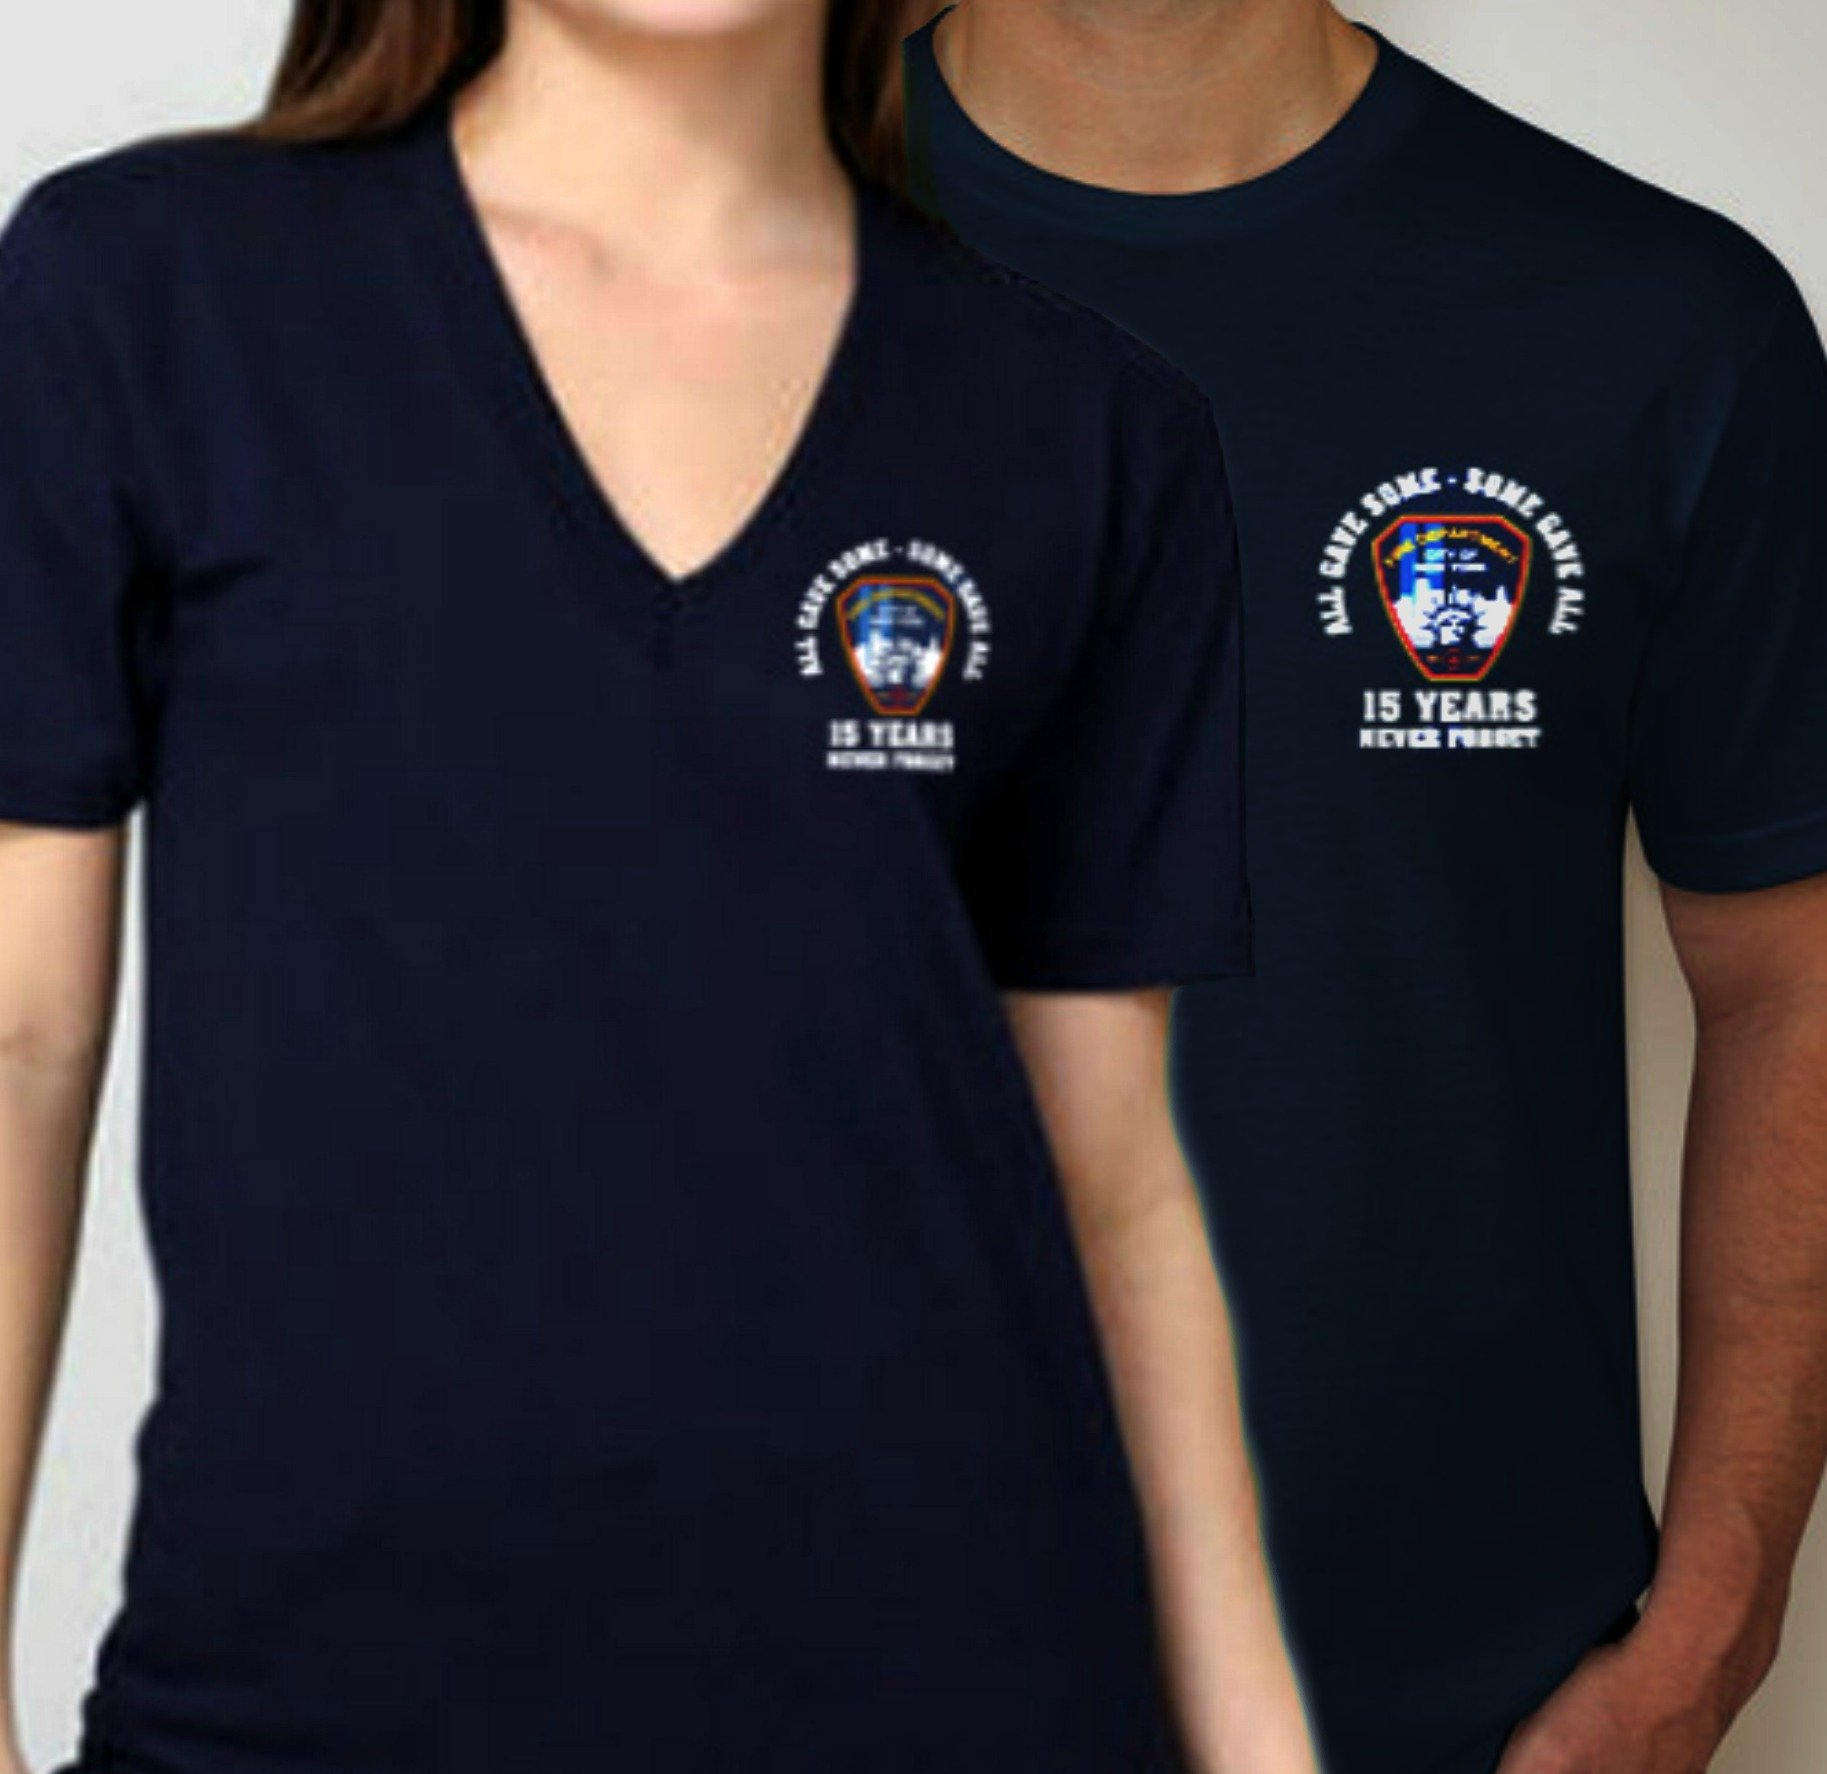 91acdcaa15c FDNY 15TH ANNIVERSARY 9 11 ALL GAVE SOME V-NECK T-SHIRT